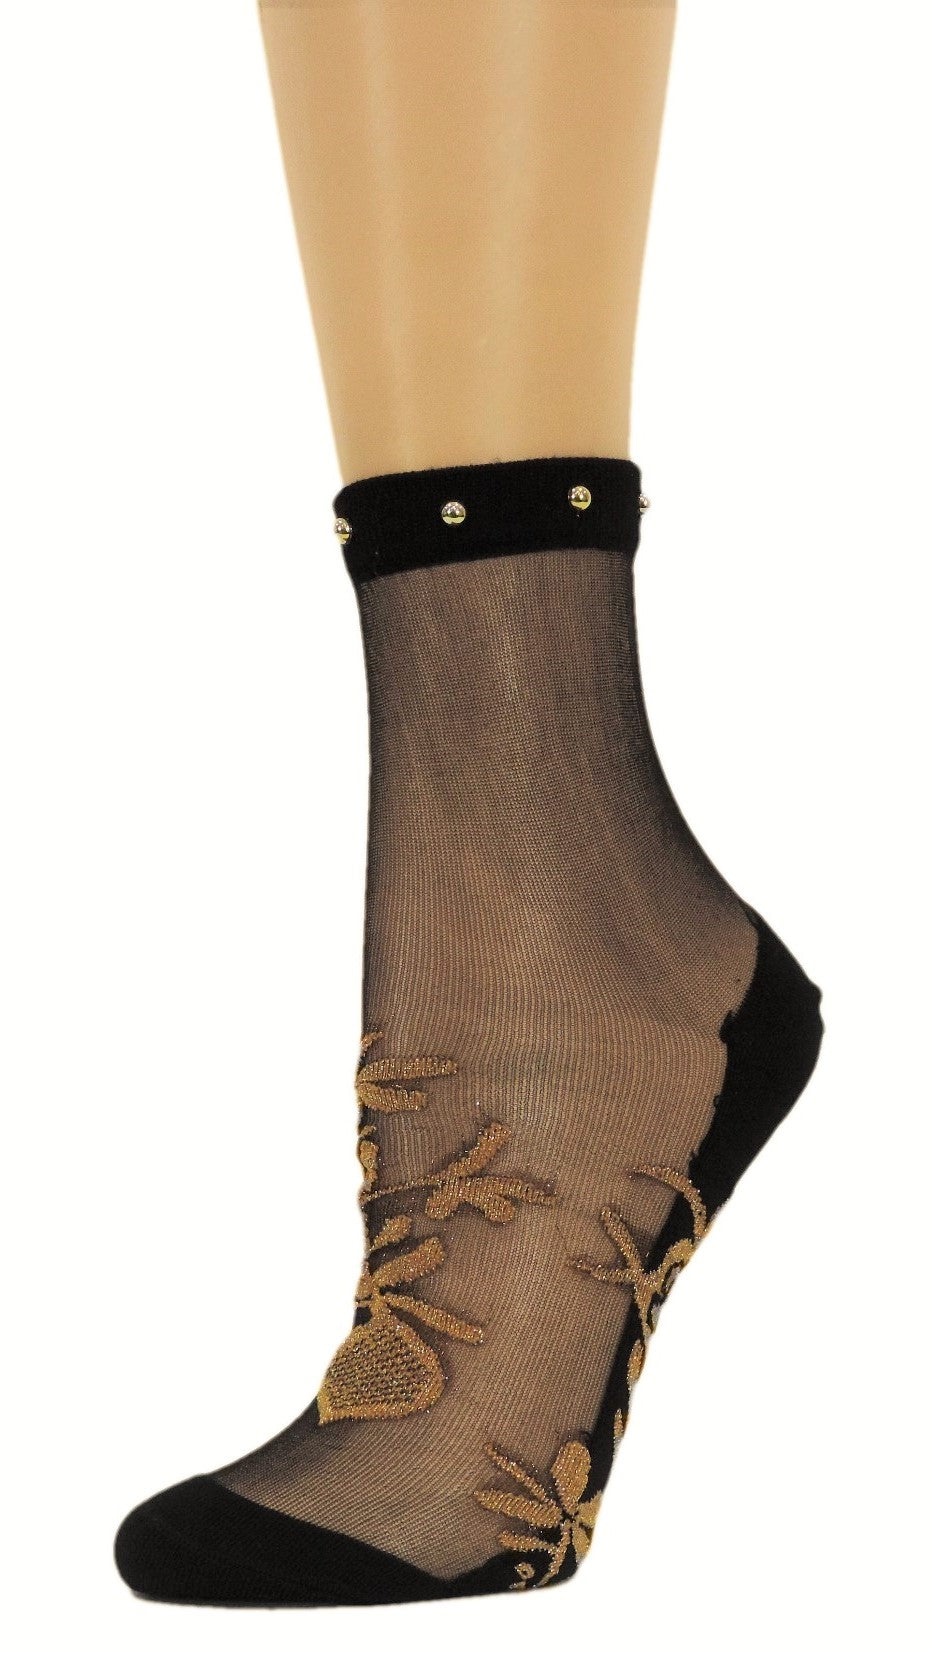 Golden Patterned Glitter Custom Sheer Socks with beads - Global Trendz Fashion®